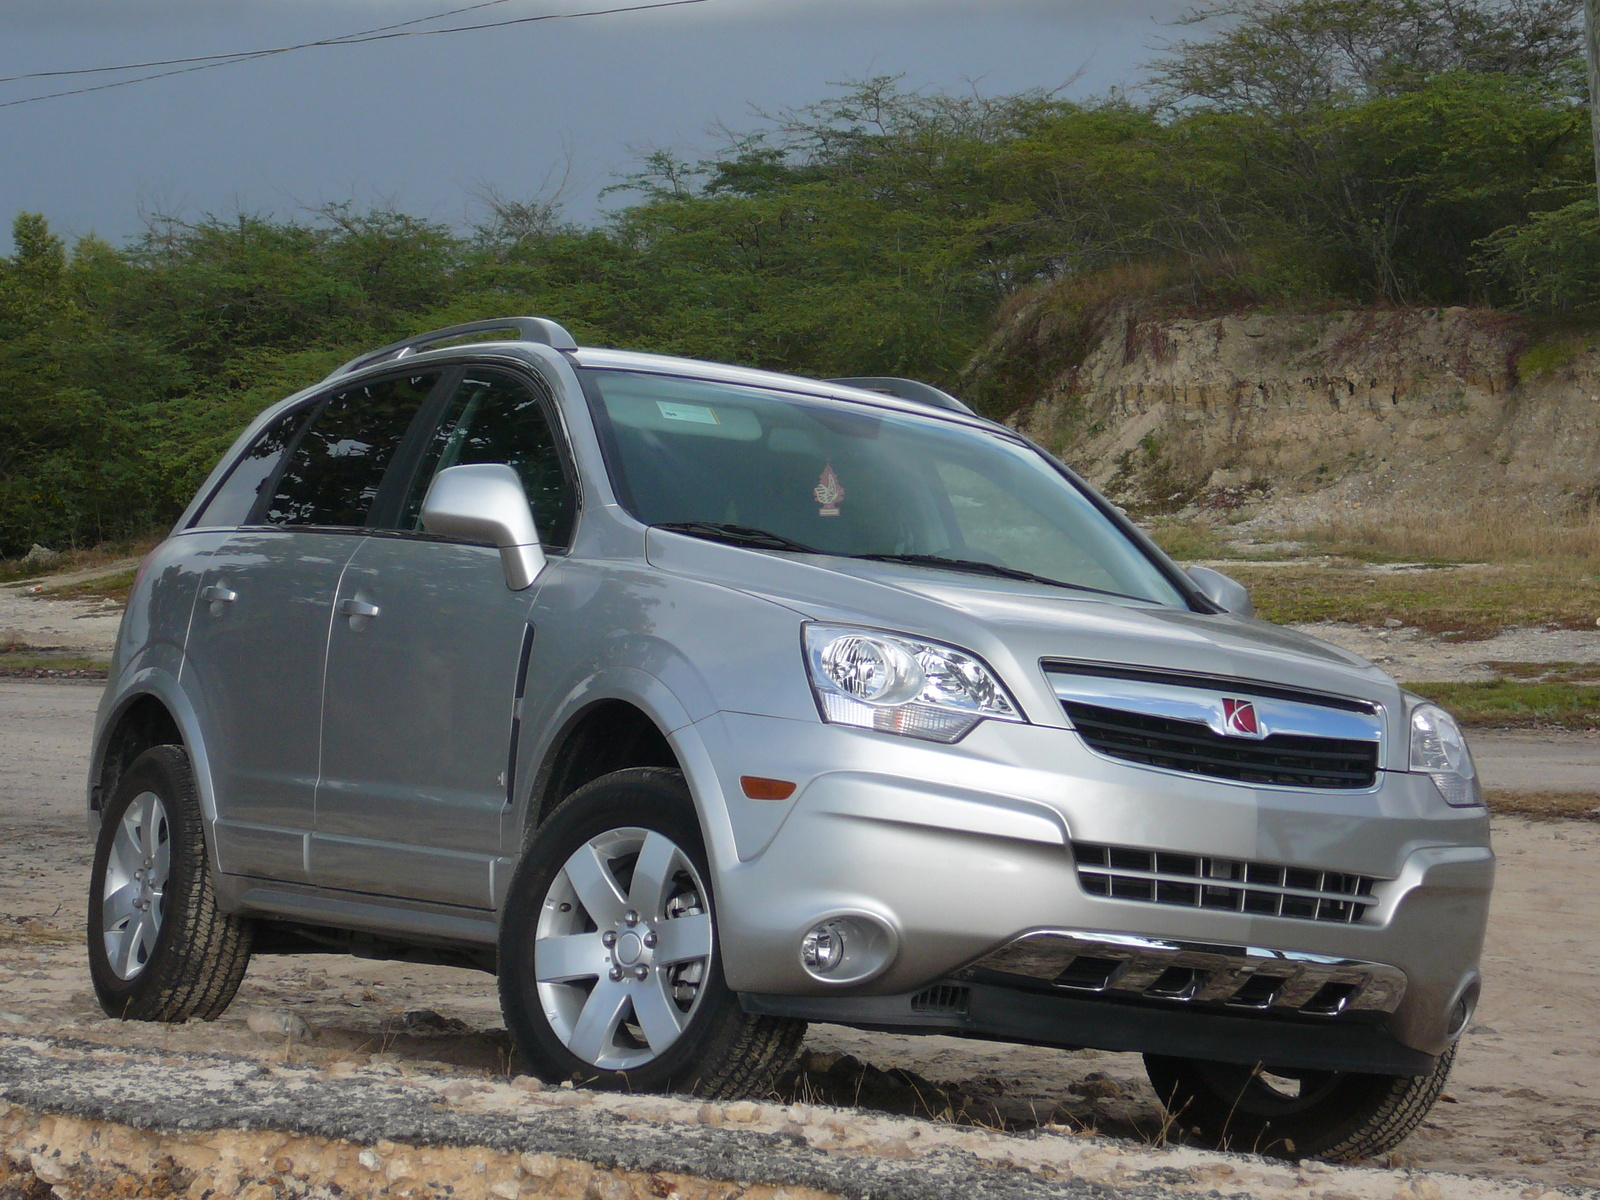 2008 Saturn VUE XR V6 picture